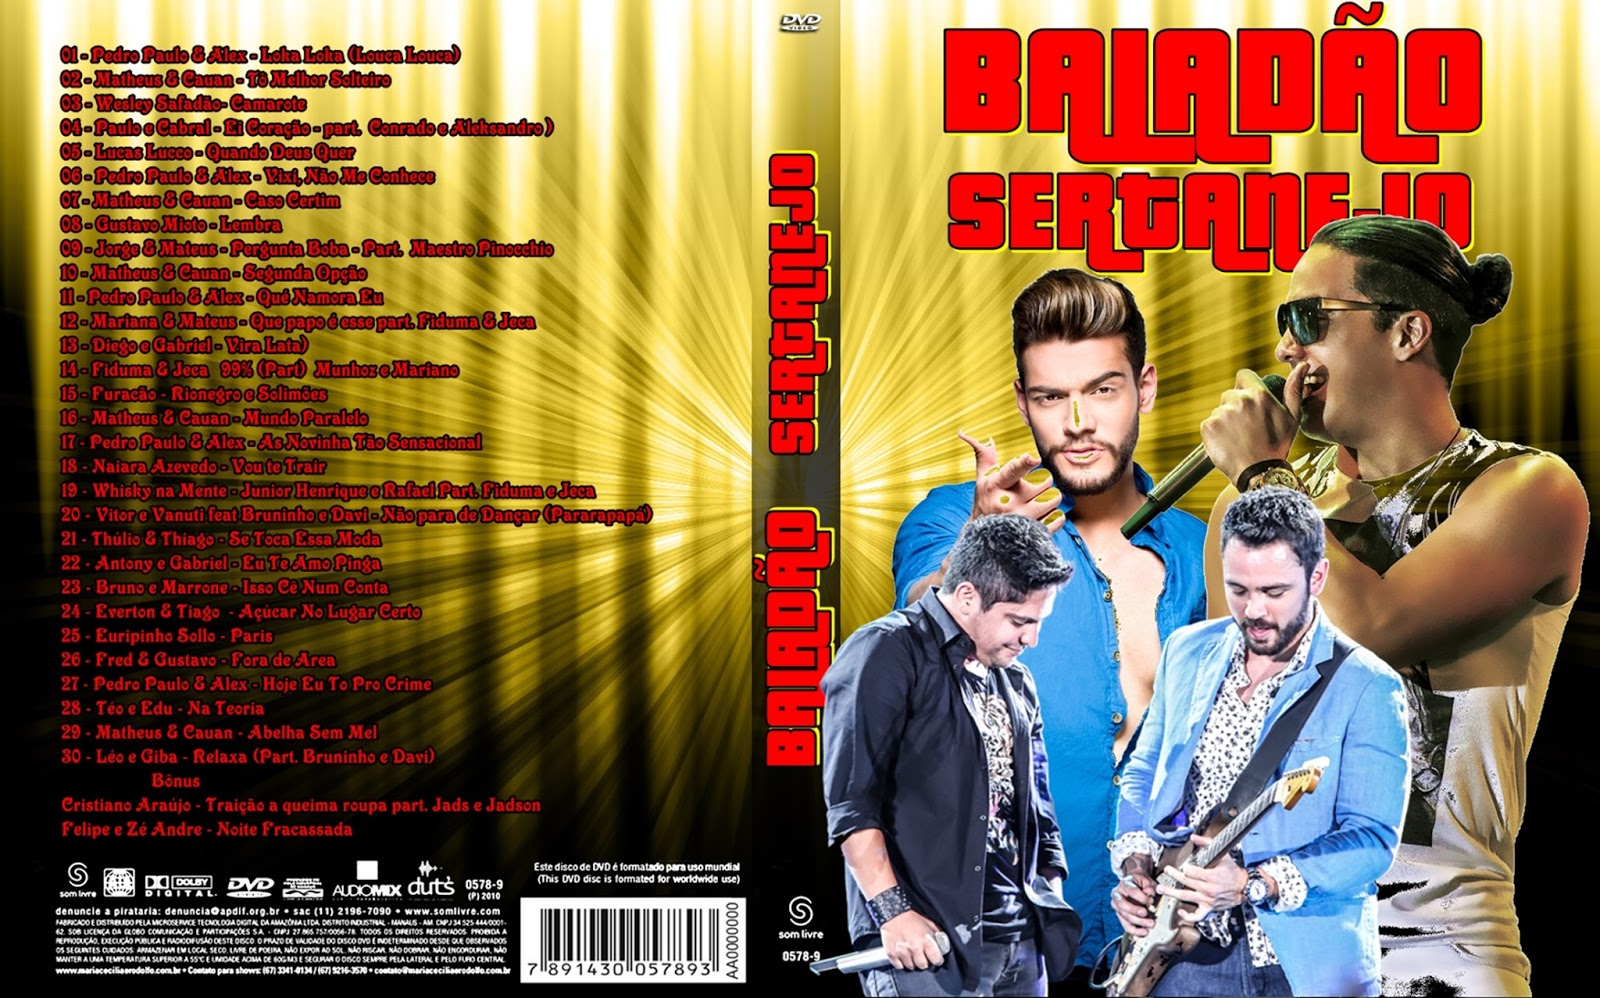 Download Baladão Sertanejo 2015 DVD-R Balad 25C3 25A3o 2BSertanejo 2Boficial